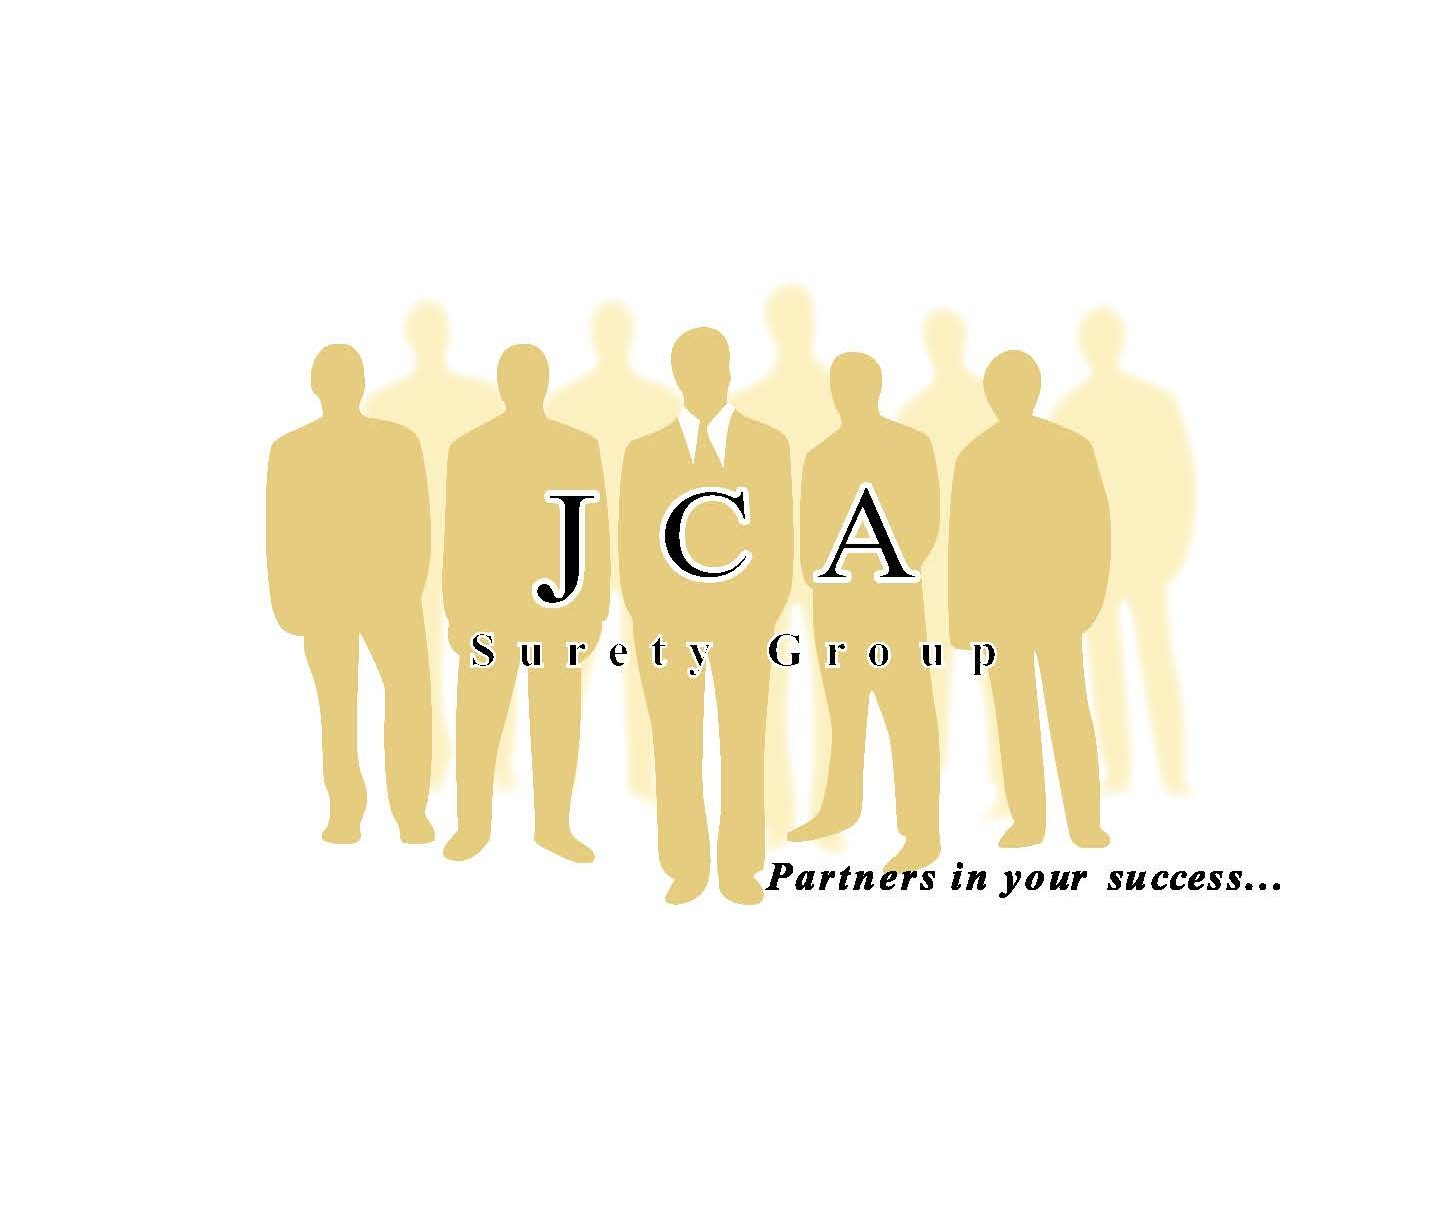 JCA Surety Group